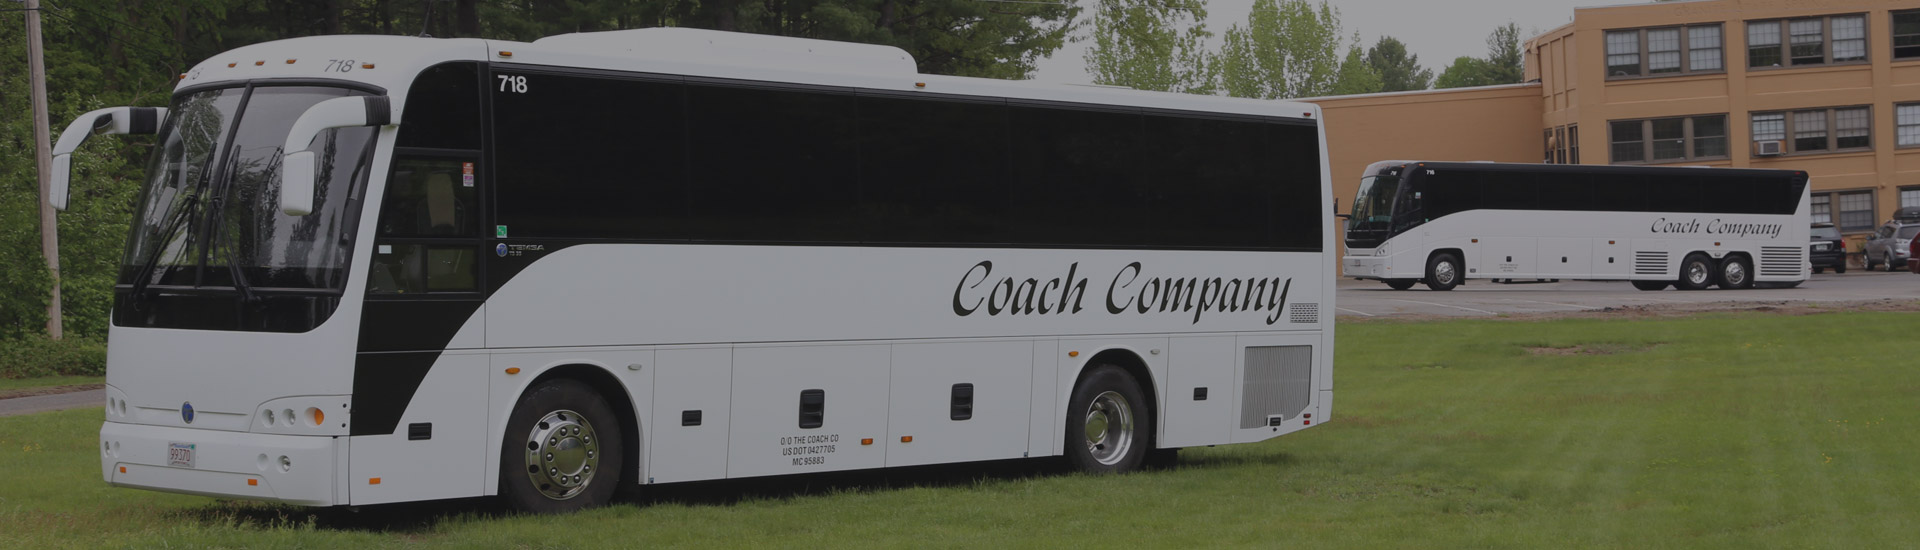 HOME - Coach Company